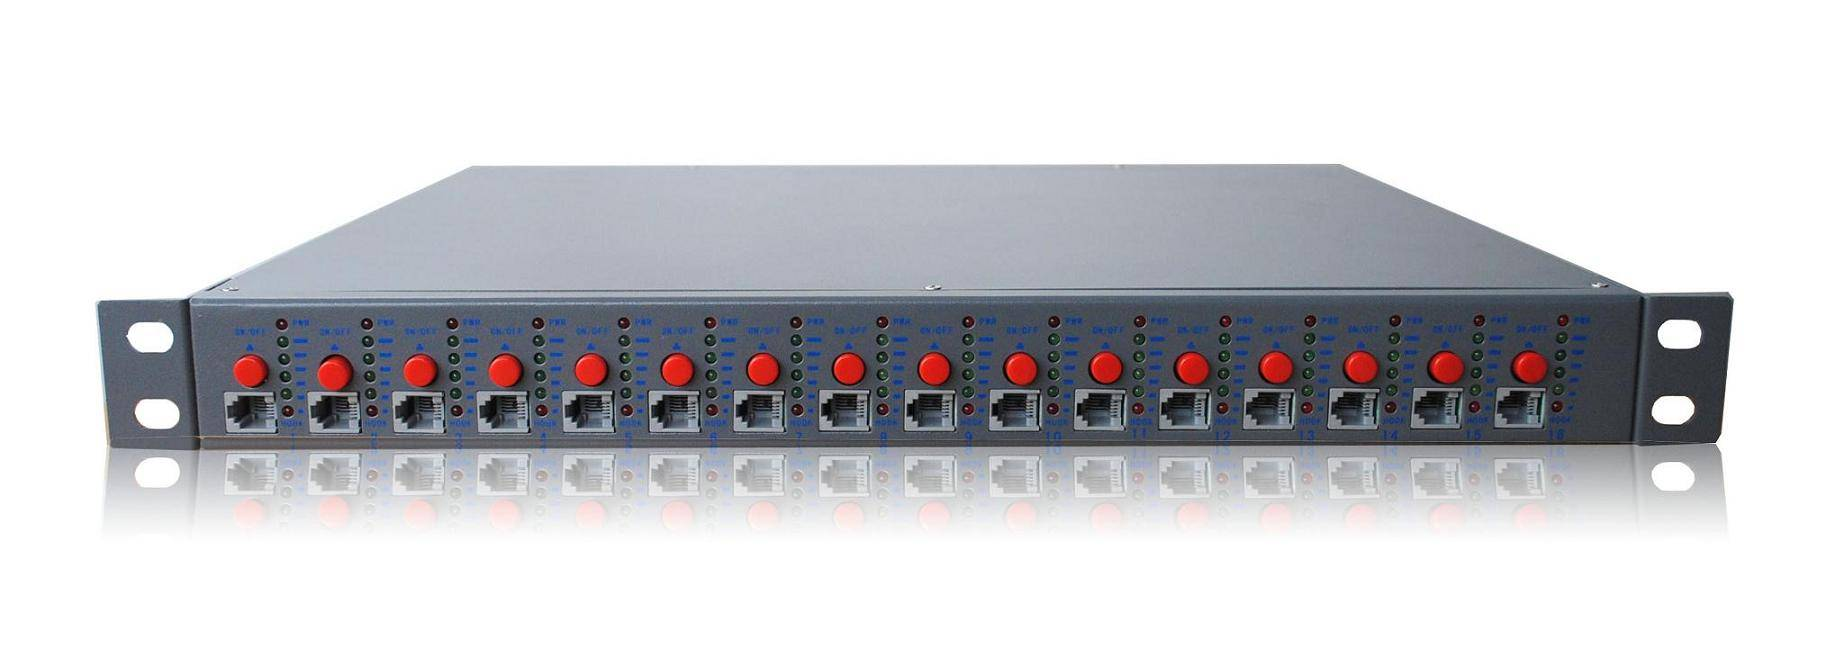 Sell 16 Ports GSM FWT Gateway